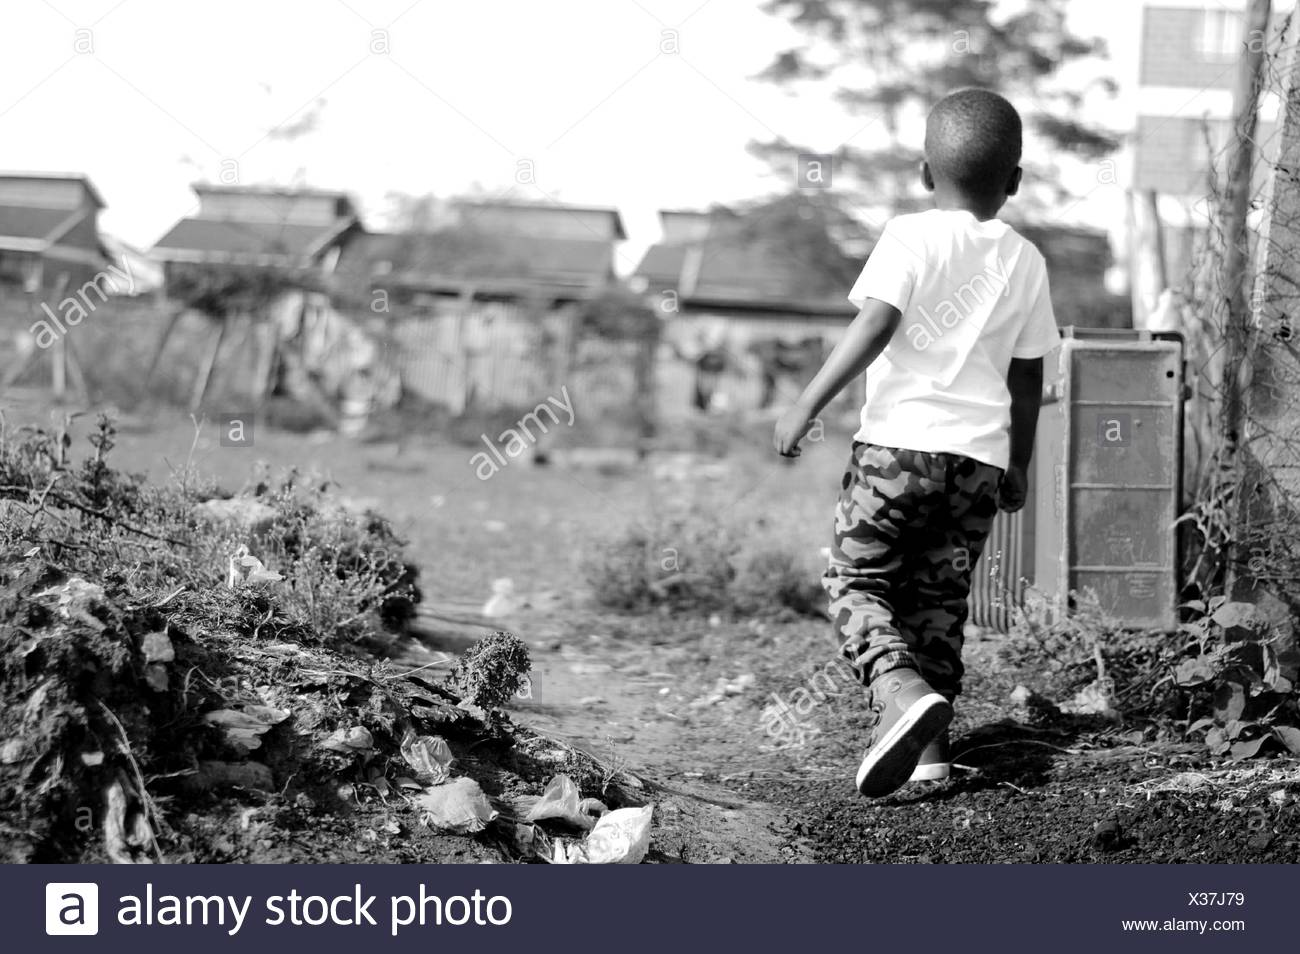 Rear View Of Boy Walking On Dirt Road - Stock Image